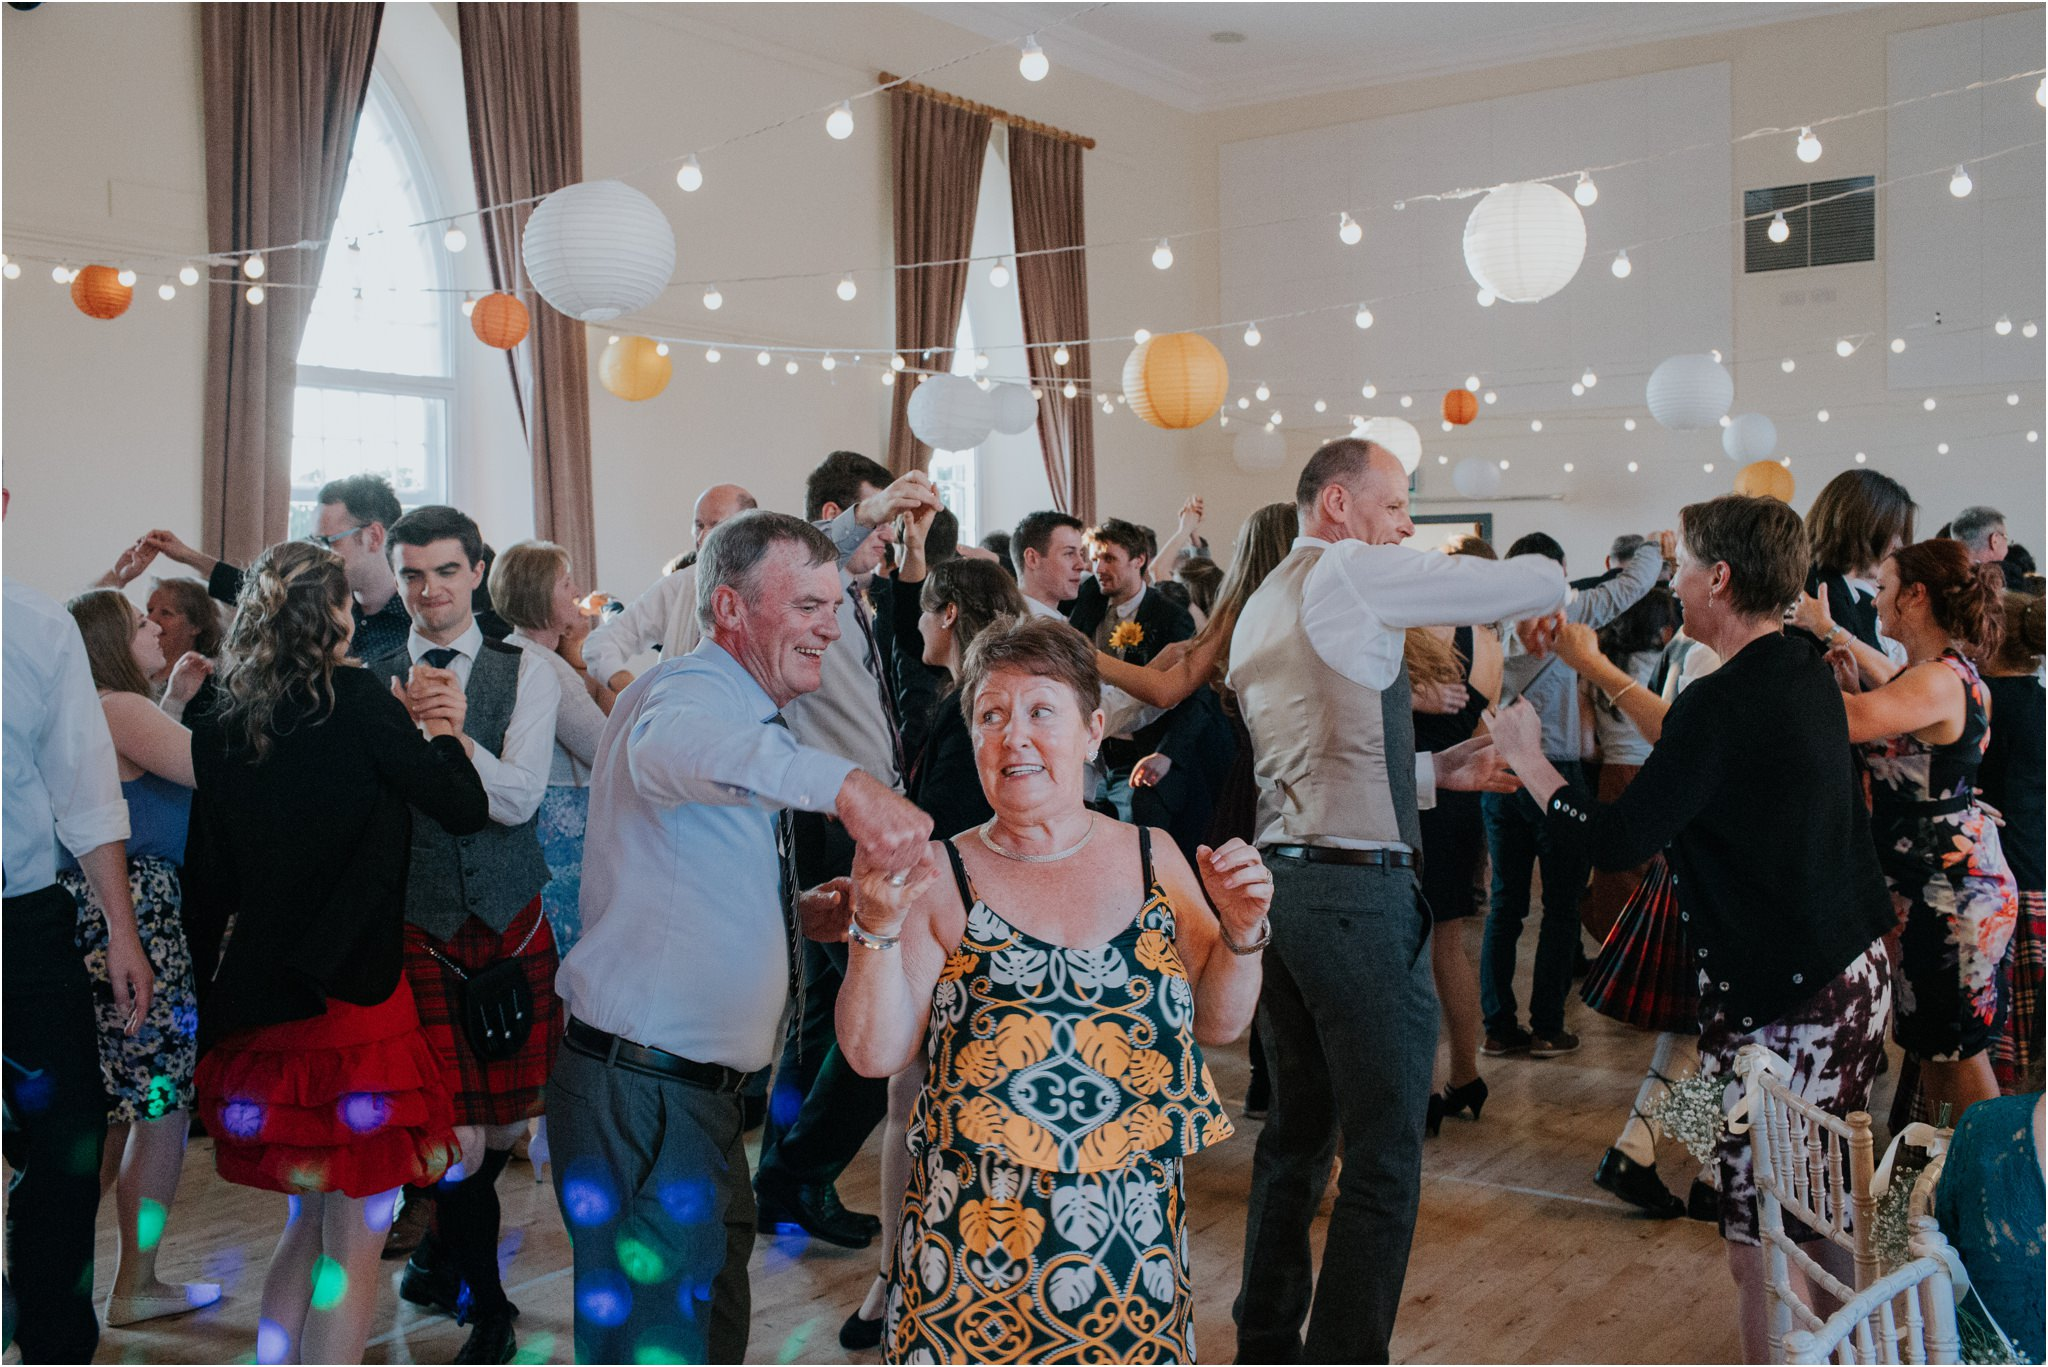 Photography 78 - Glasgow Wedding Photographer - Fraser Thirza - Killearn Village Hall - Three Sisters Bake Wedding_0161.jpg